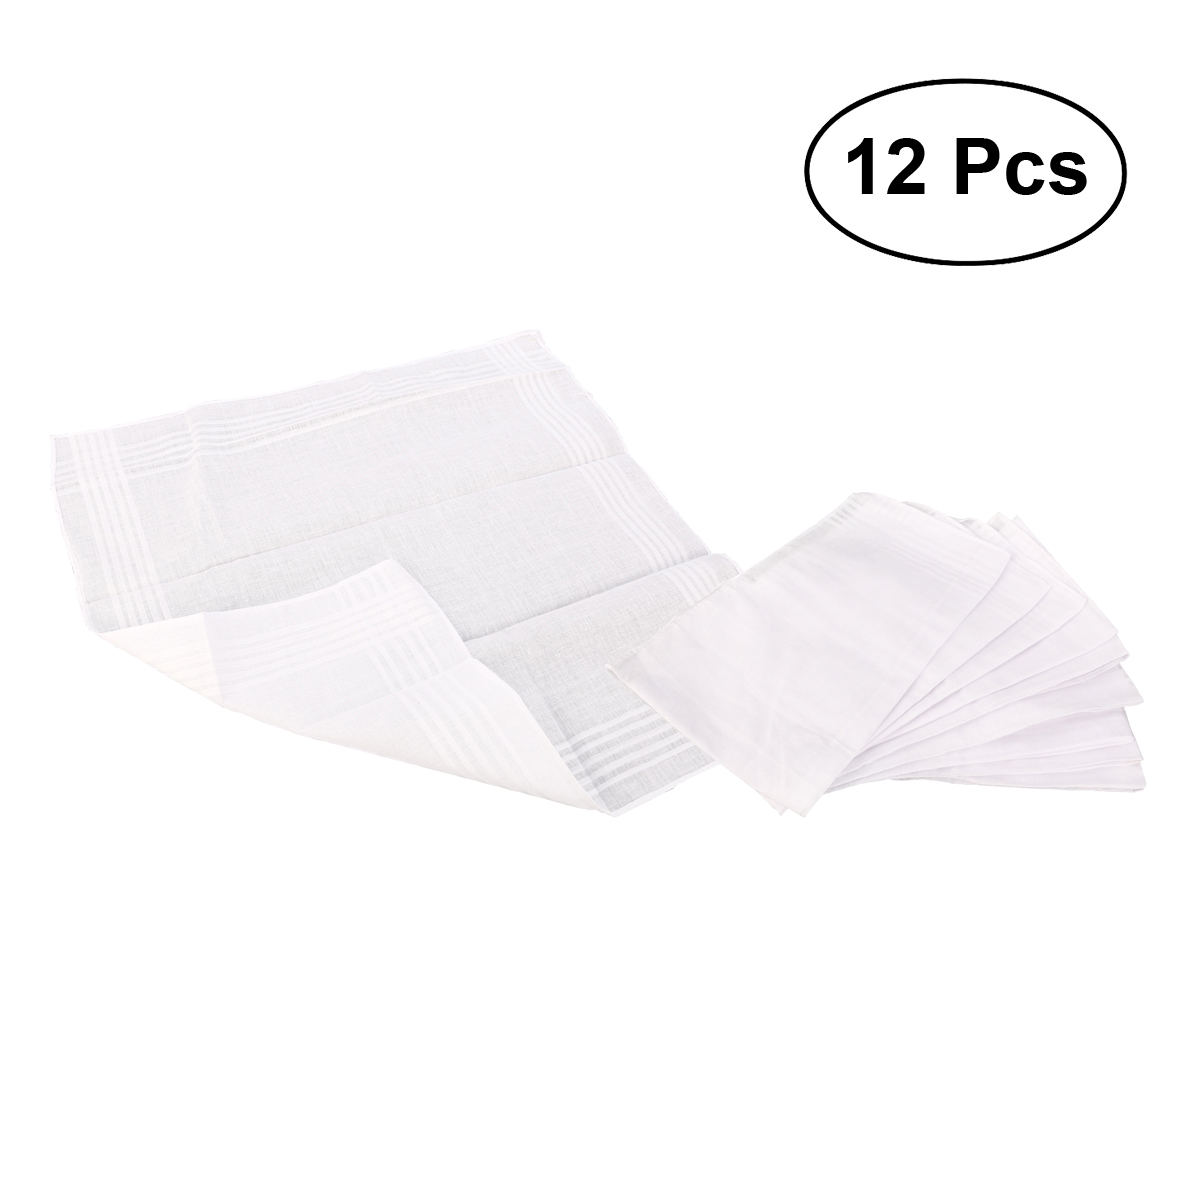 12pcs White Cotton Handkerchiefs Cotton Towels Hankerchief For Men Women Children Kids (38 * 38cm)